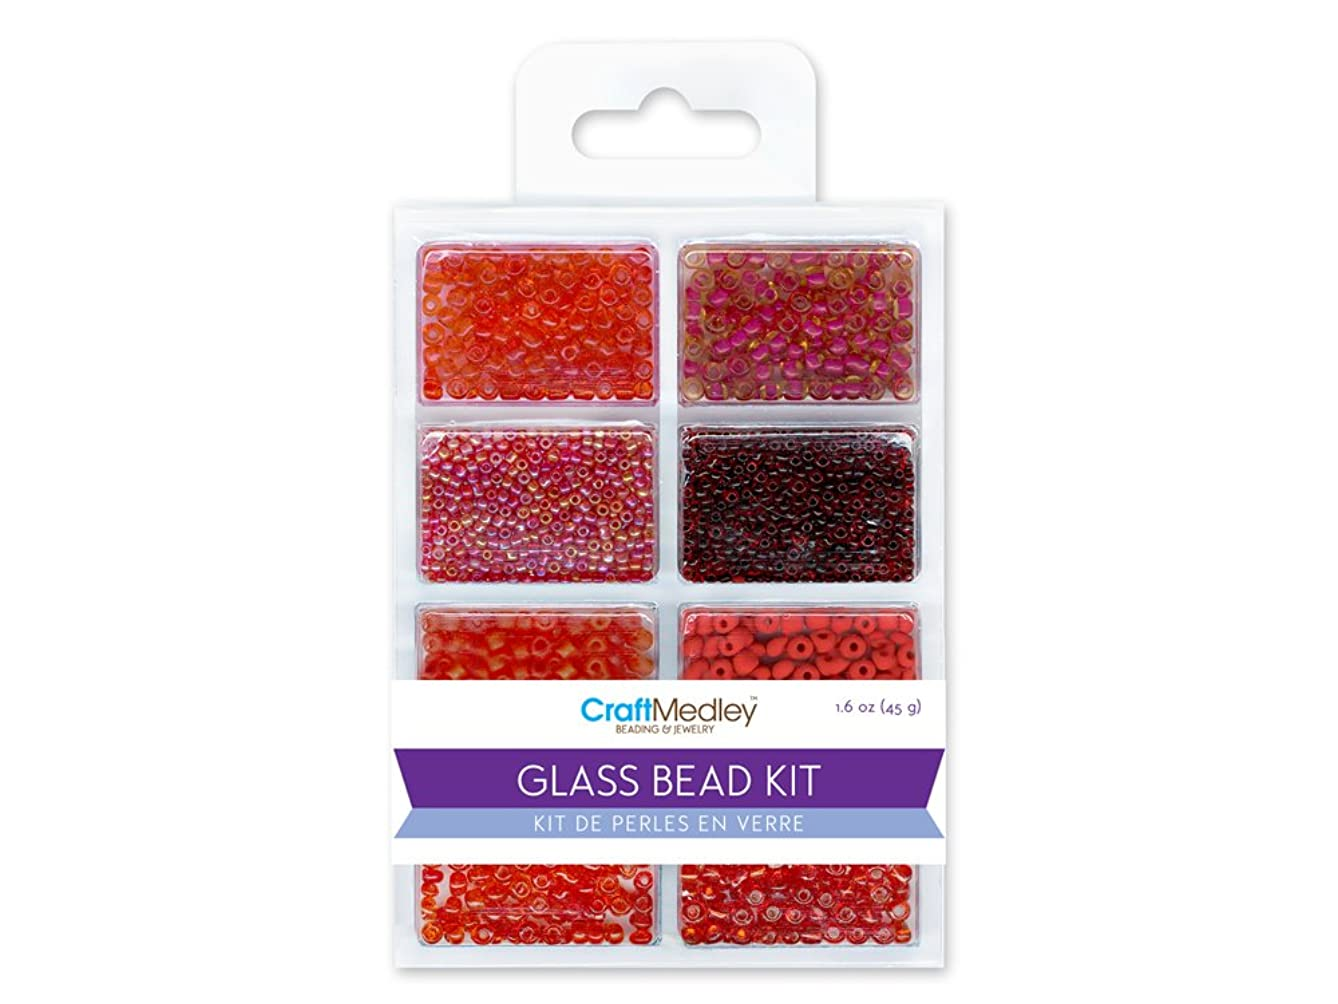 CraftMedley Glass Bead Kit, 45g, Rocailles/Seed/Bugles, Rouge